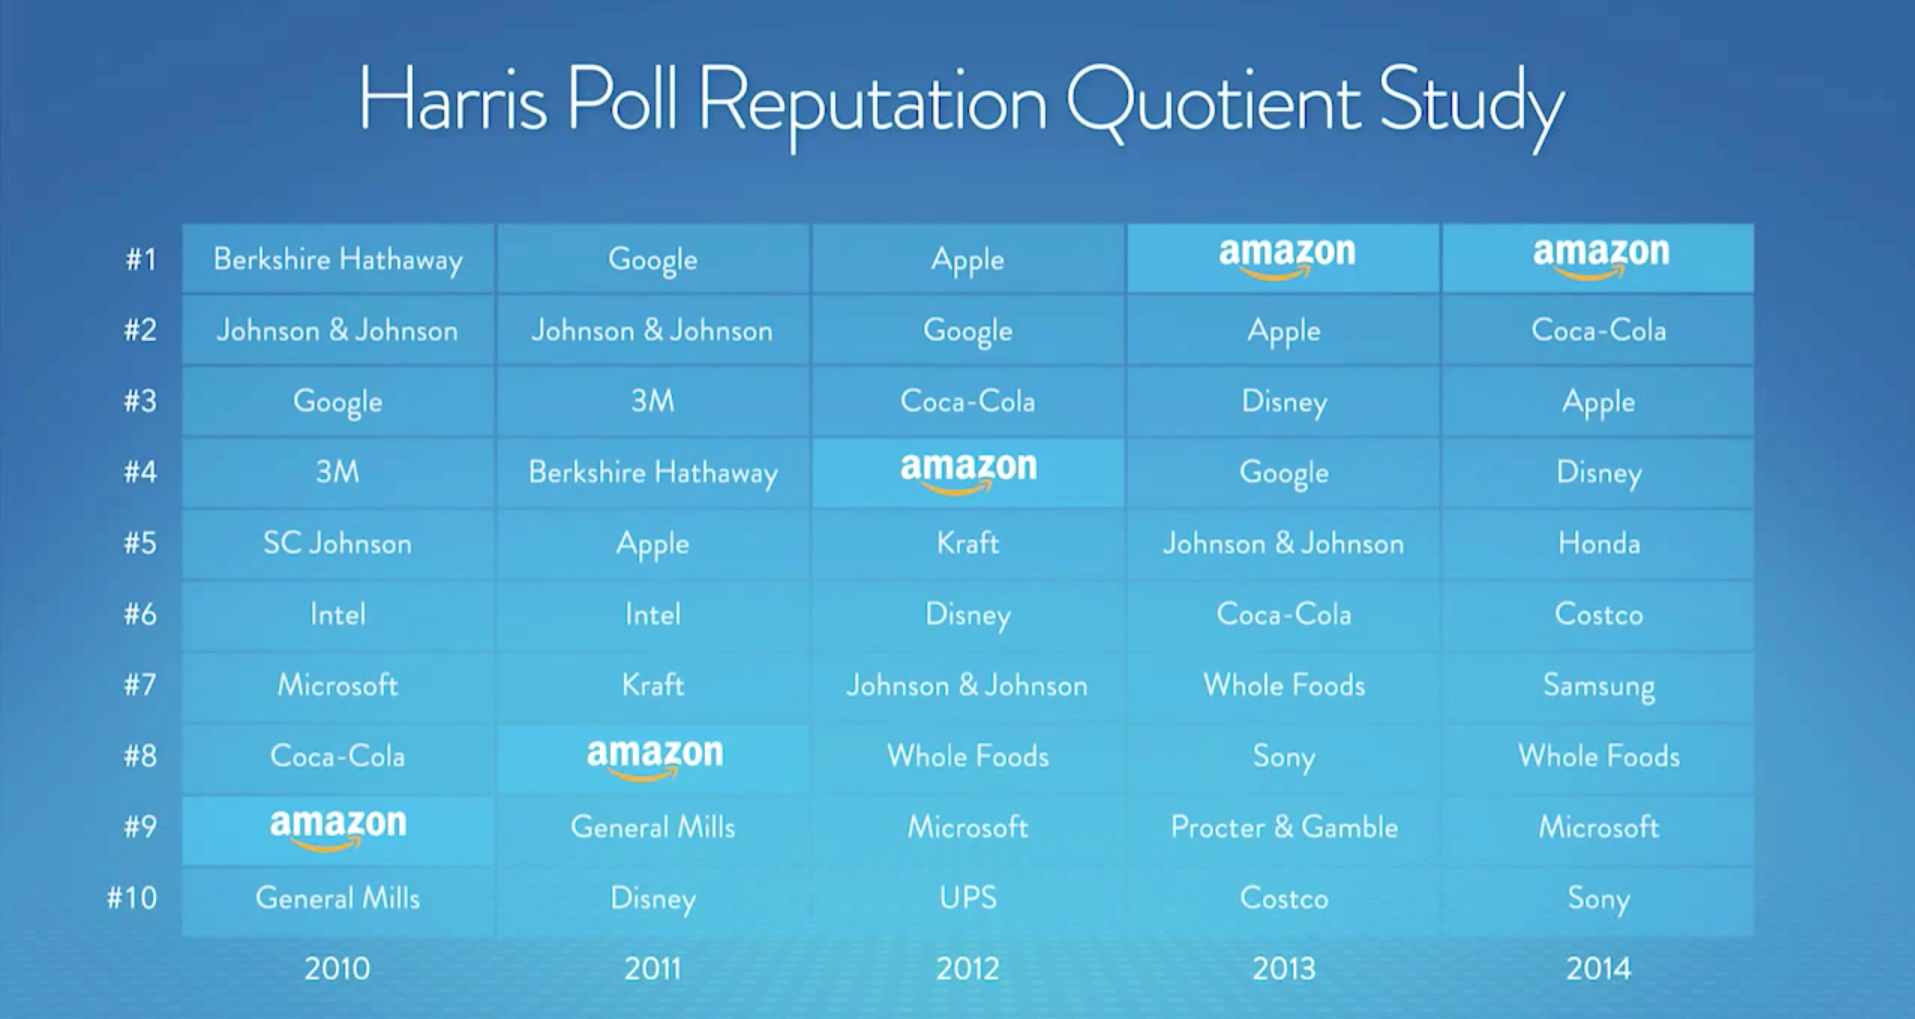 Harris Poll showing Amazon rising to #1 in customer satisfaction